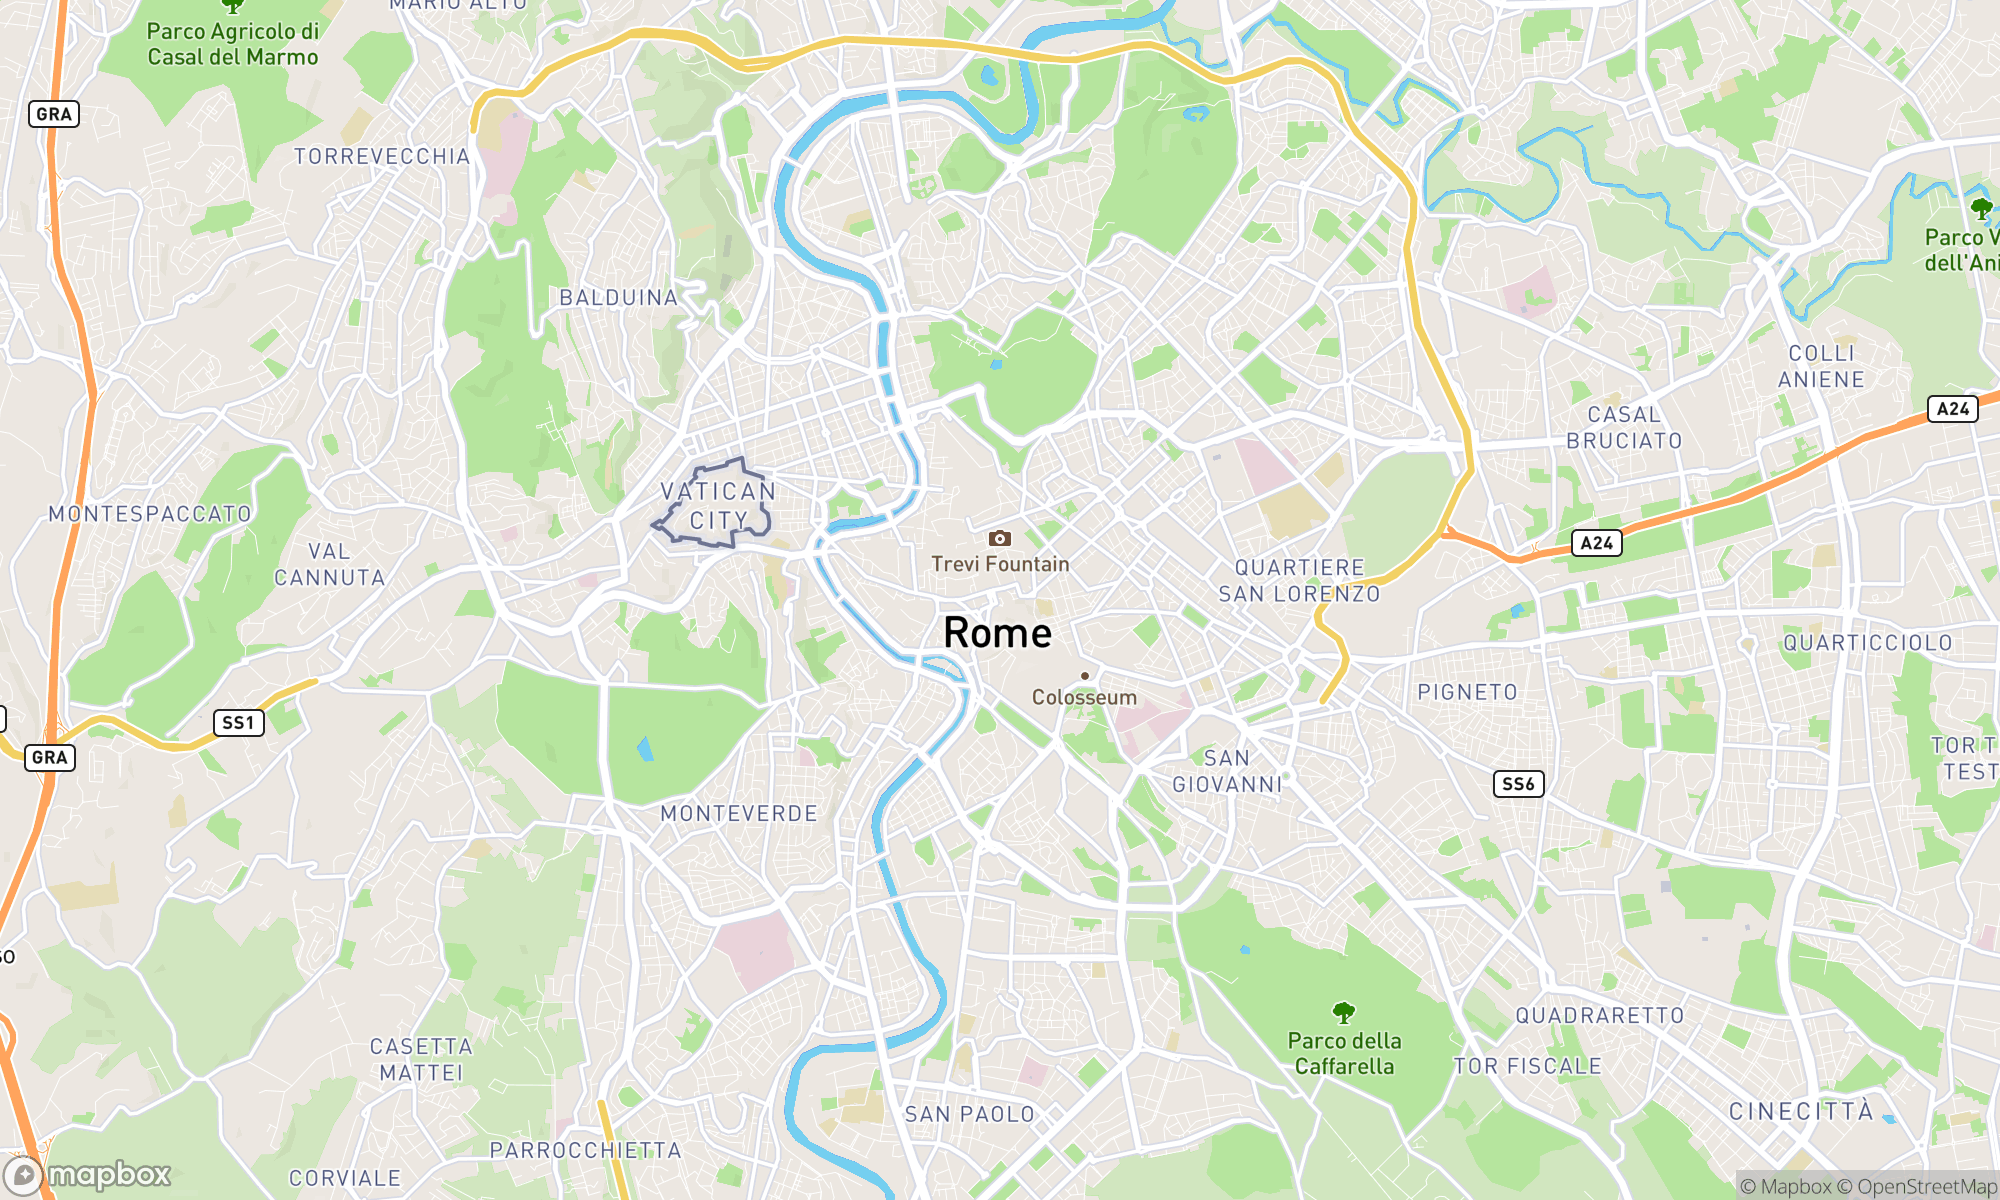 Map of Rome area